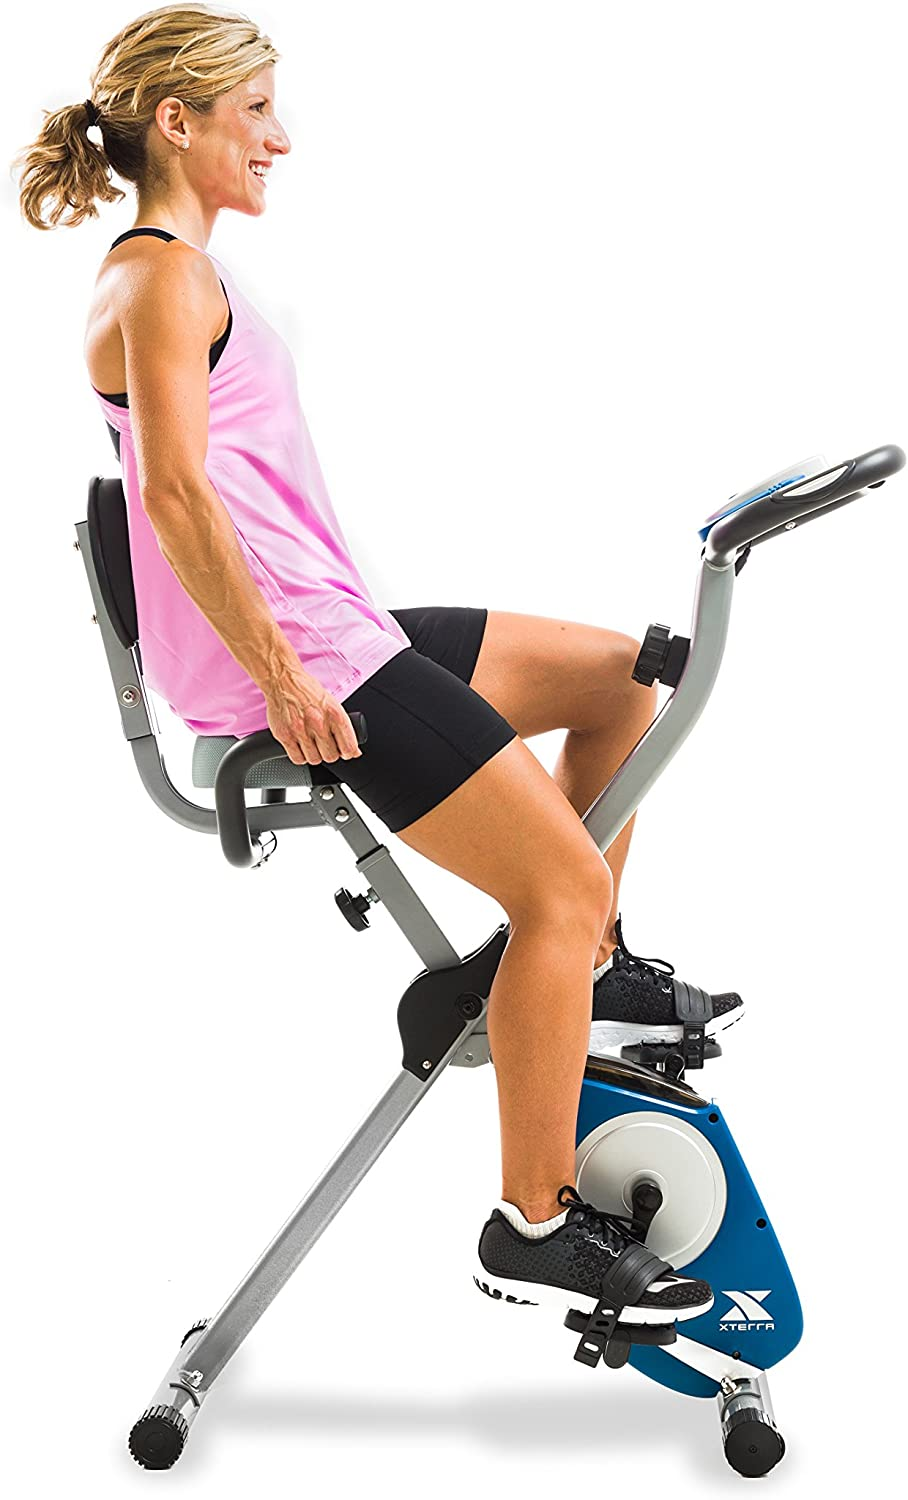 What do you get when you own an exercise bike at home